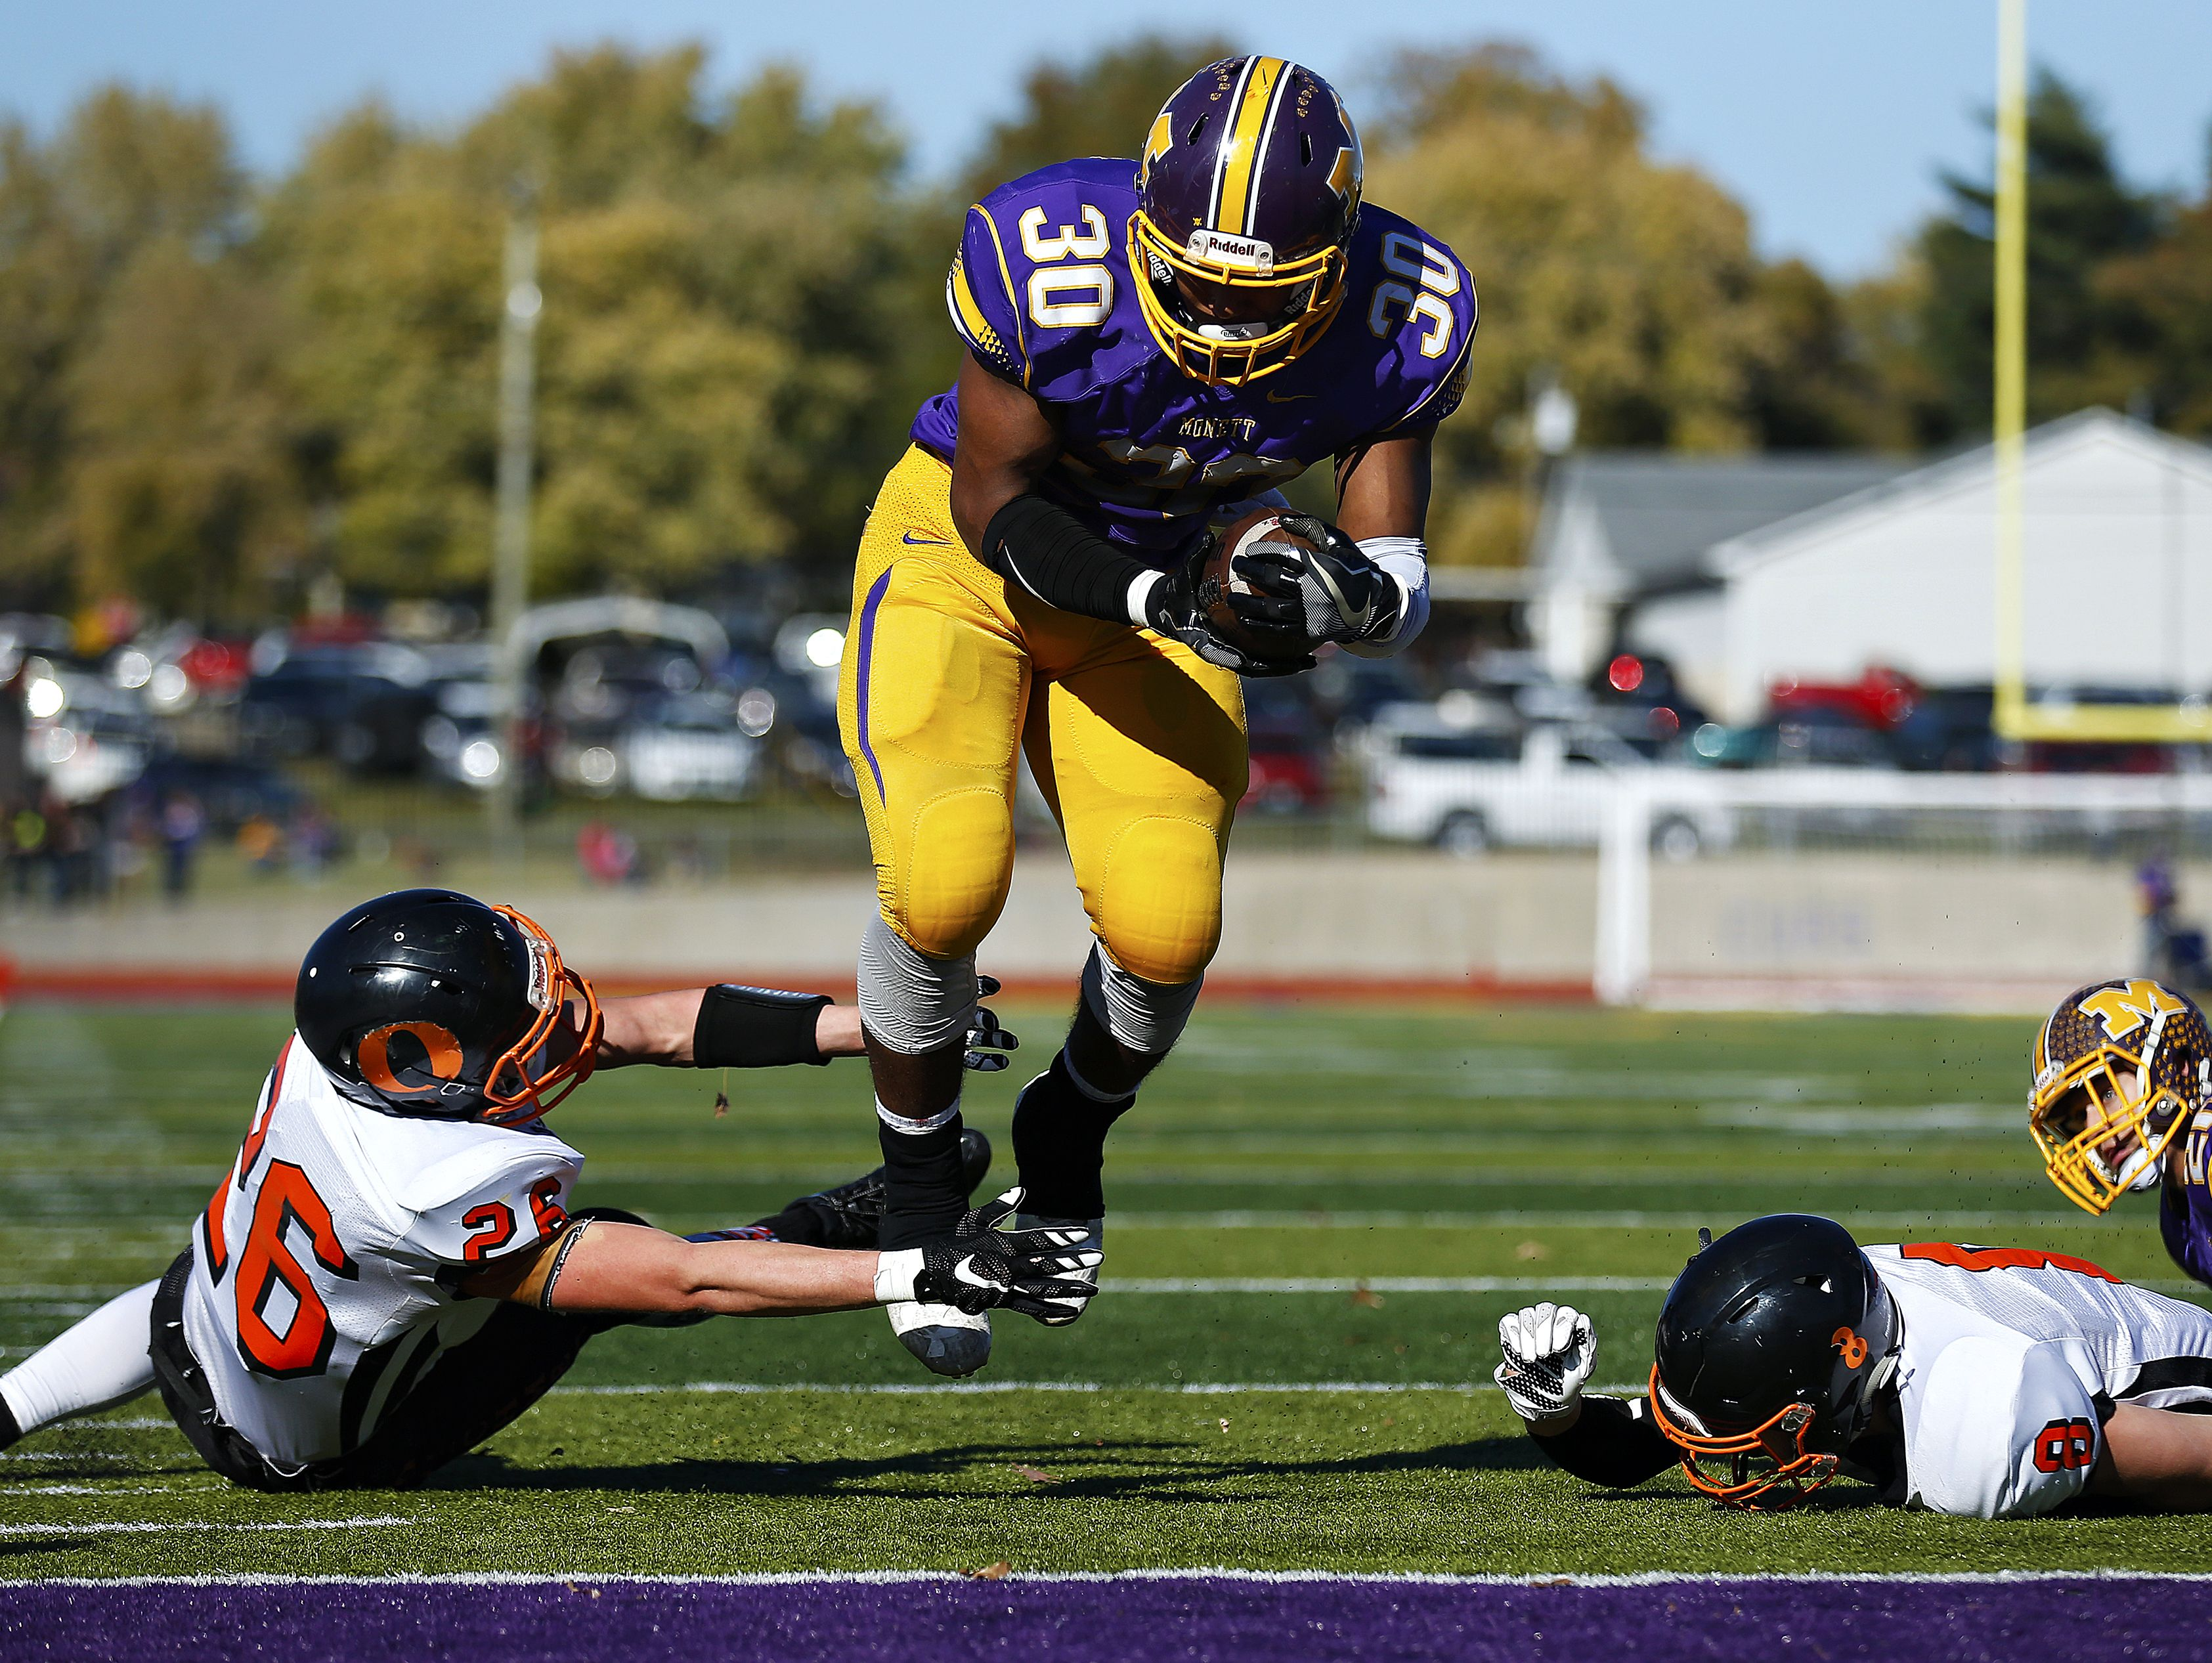 Monett High School running back Michael Branch (30) leaps and stretches into the end zone to score a touchdown during second quarter action of the quarterfinal playoff game between Monett High School and Owensville High School played at Burl Fowler Stadium in Monett, Mo. on Nov. 12, 2016. The Monett Cubs won the game 48-20.